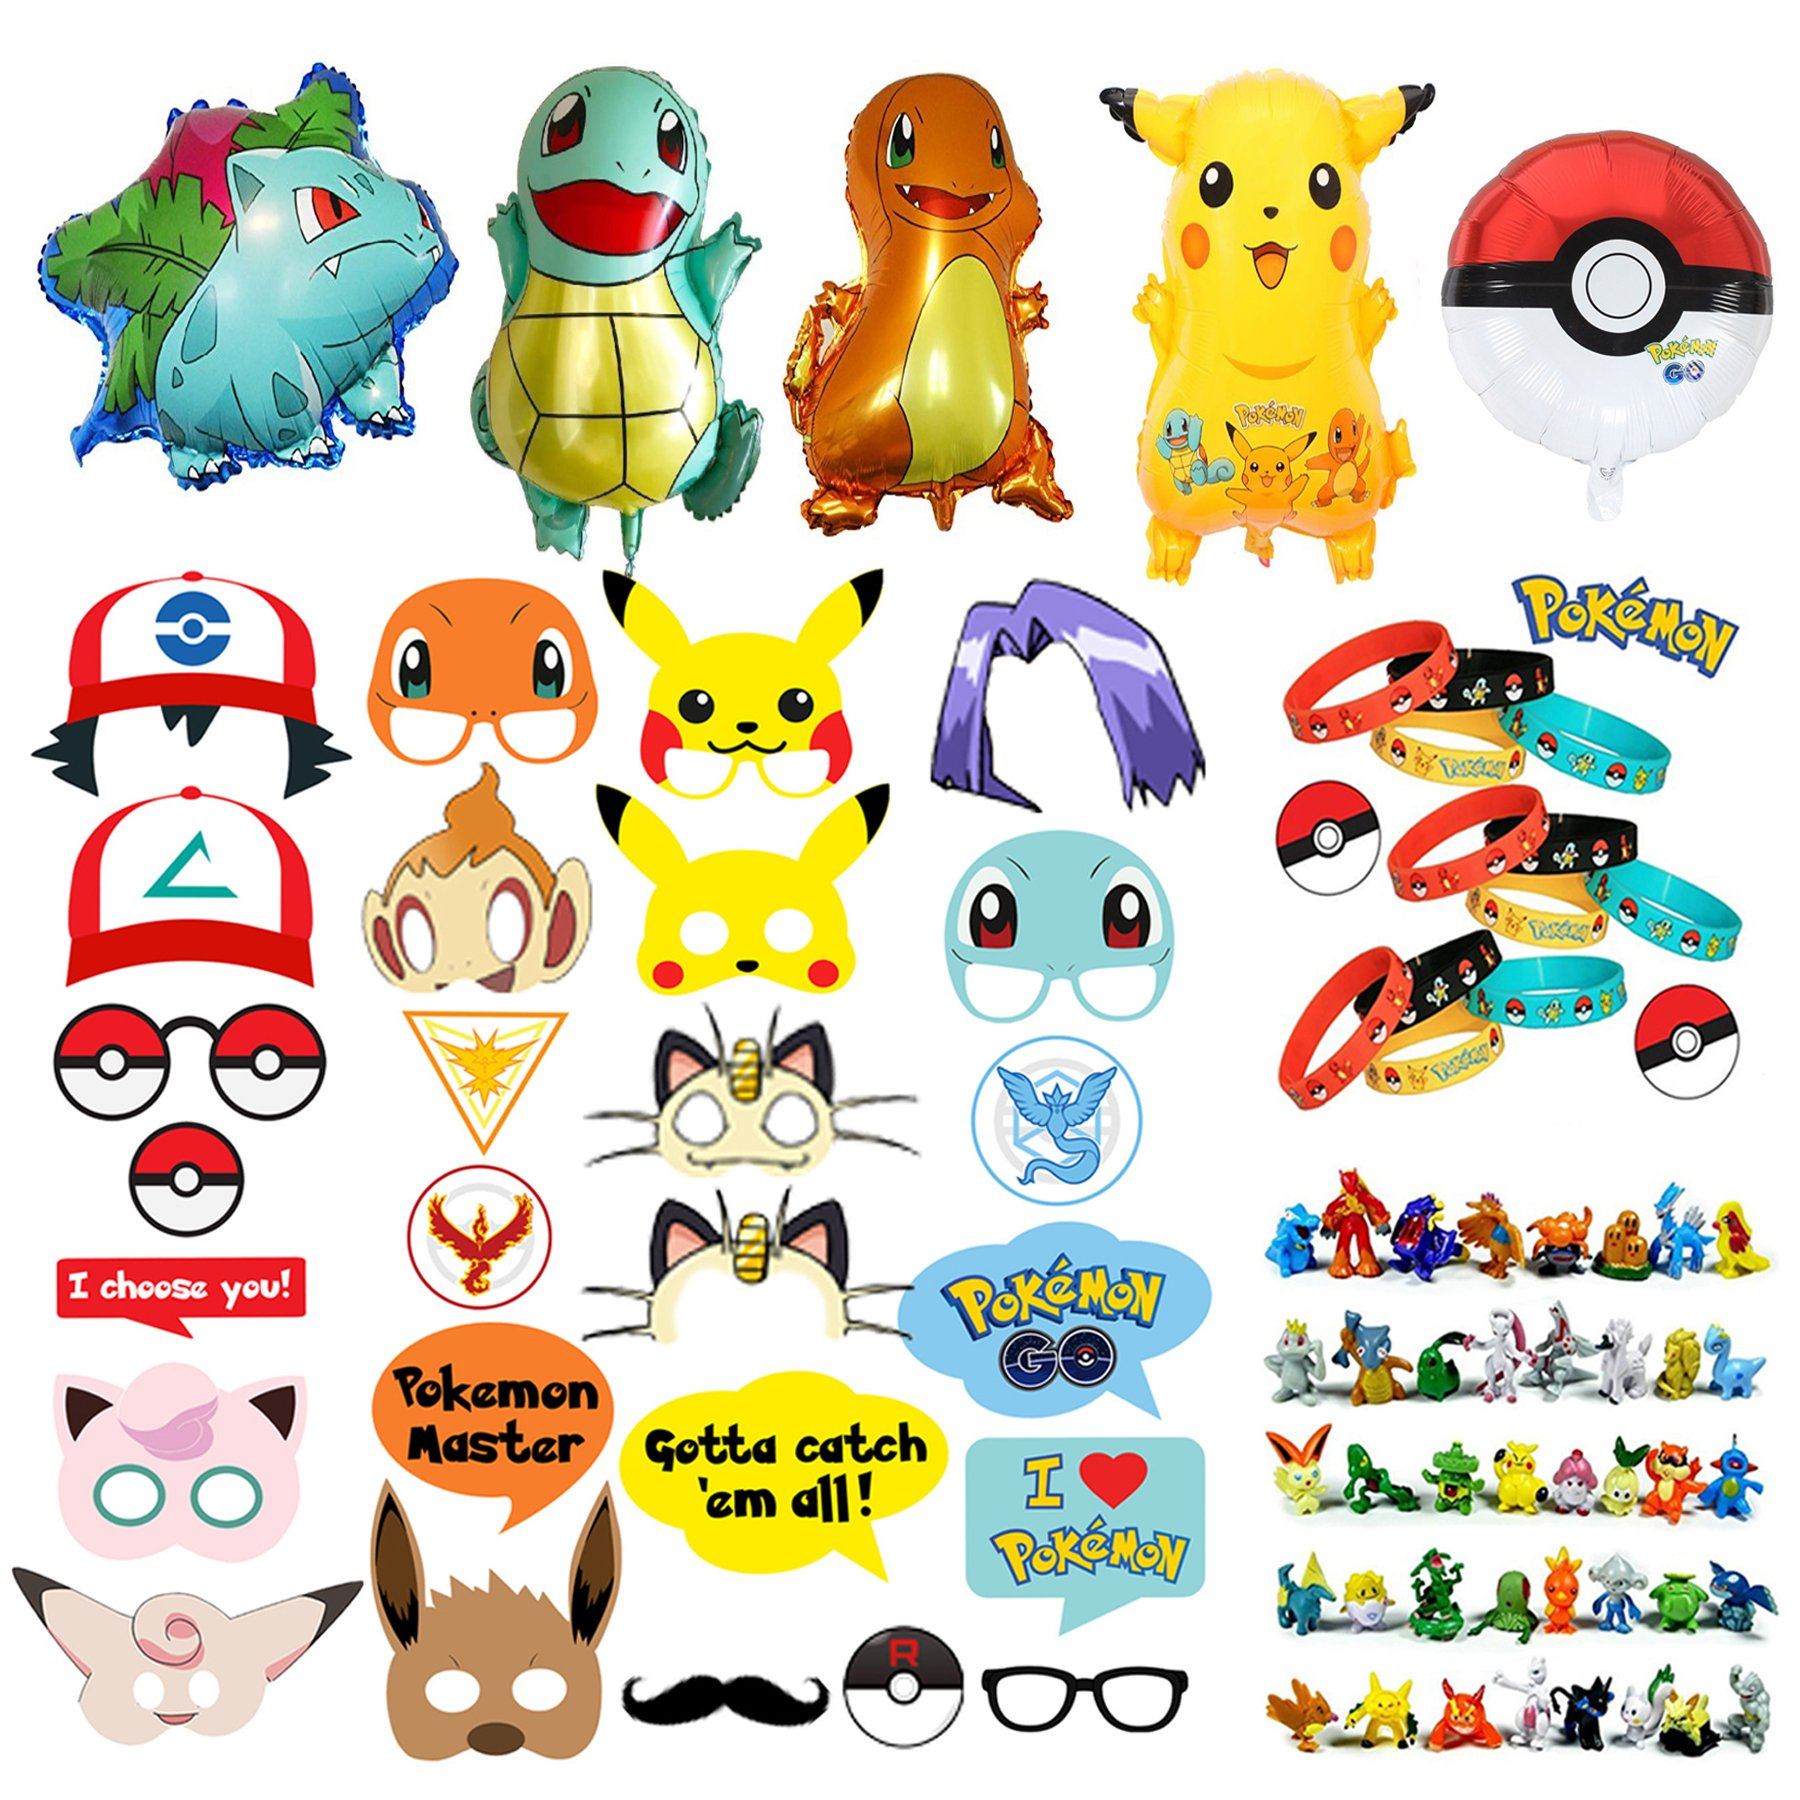 Pokemon Party Supplies Bundle Favors Pack-24 Action Figures,12 Bracelets, 5 Balloons and 26 Photo Booth Props Suitable for Birthday Theme Party by generic